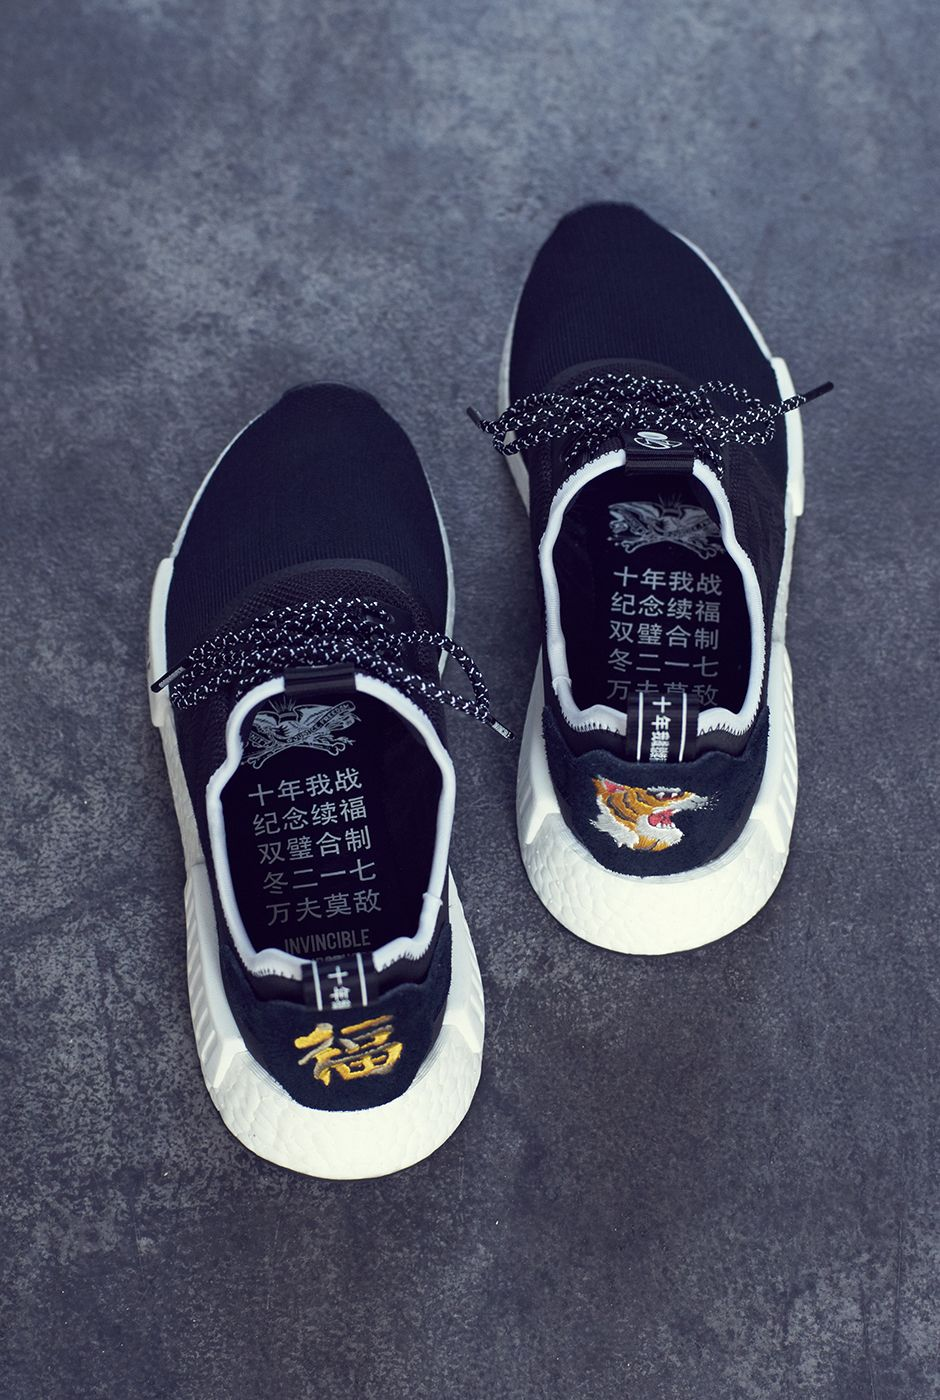 32fe0747762d0 Invincible NEIGHBORHOOD adidas NMD R1 CQ1775 Release Date ...